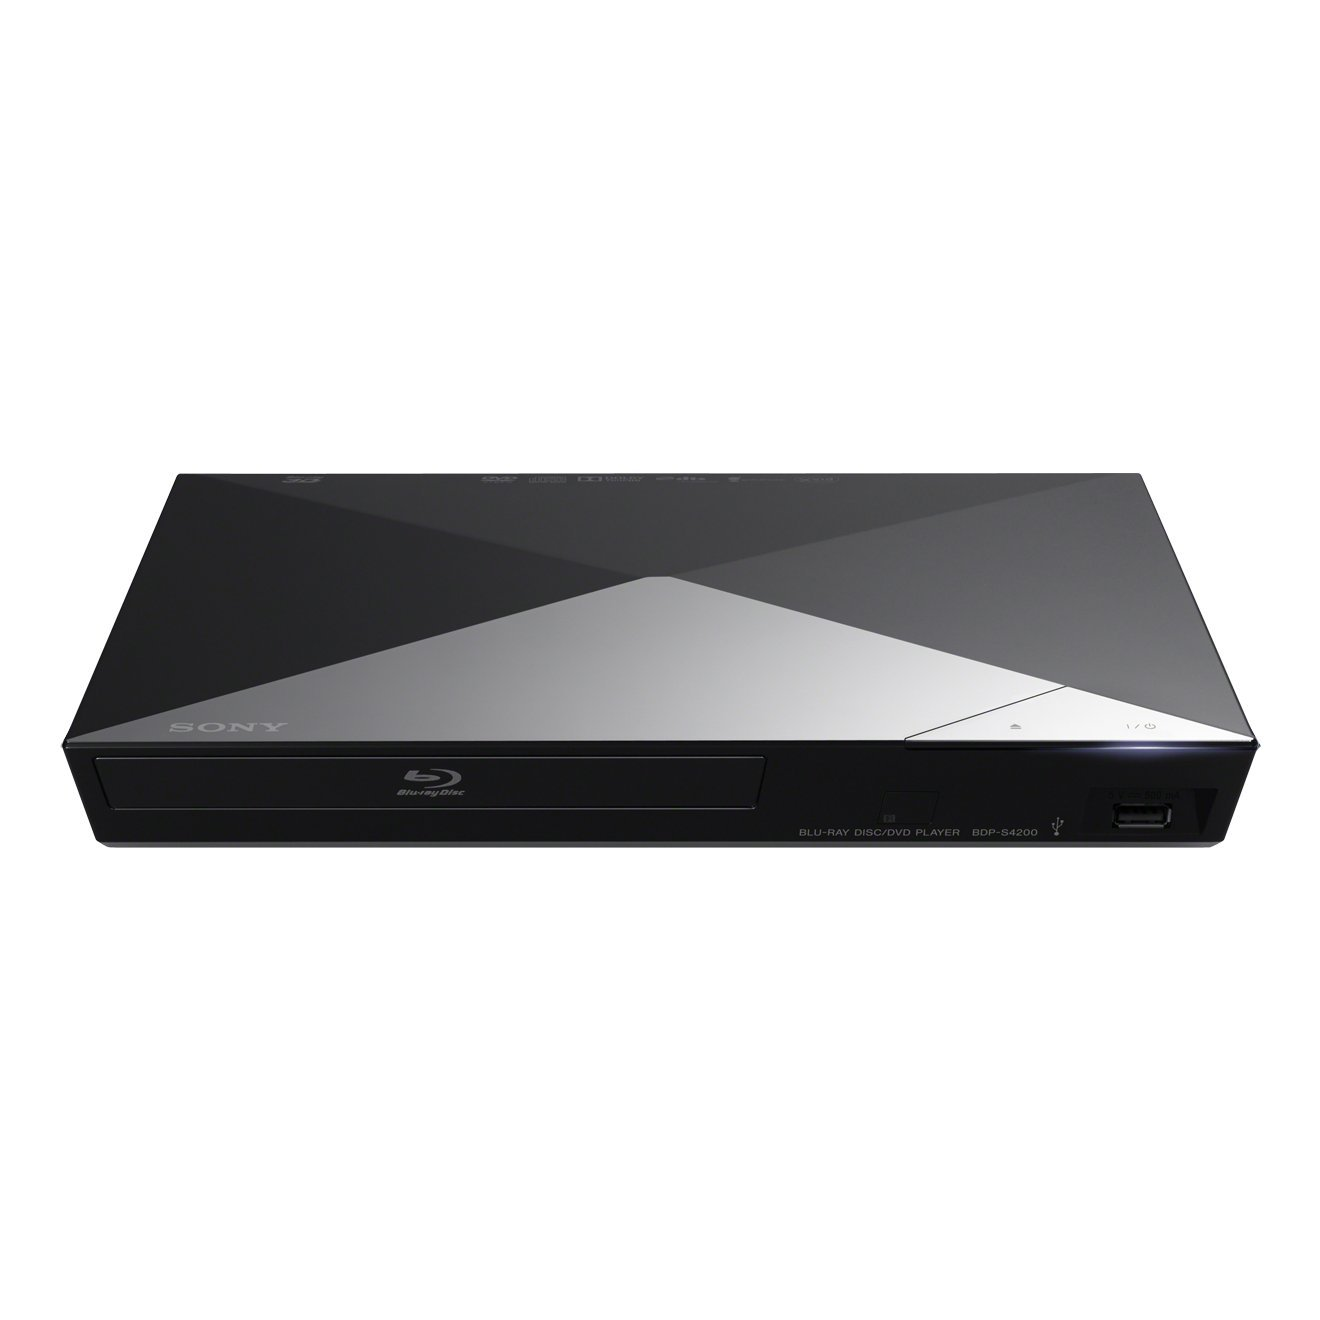 sony bdps4200 smart full hd 3d blu ray disc player amazon co uk rh amazon co uk sony blu-ray disc/dvd player bdp-s185 manual sony blu ray disc dvd player bdp s5200 manual